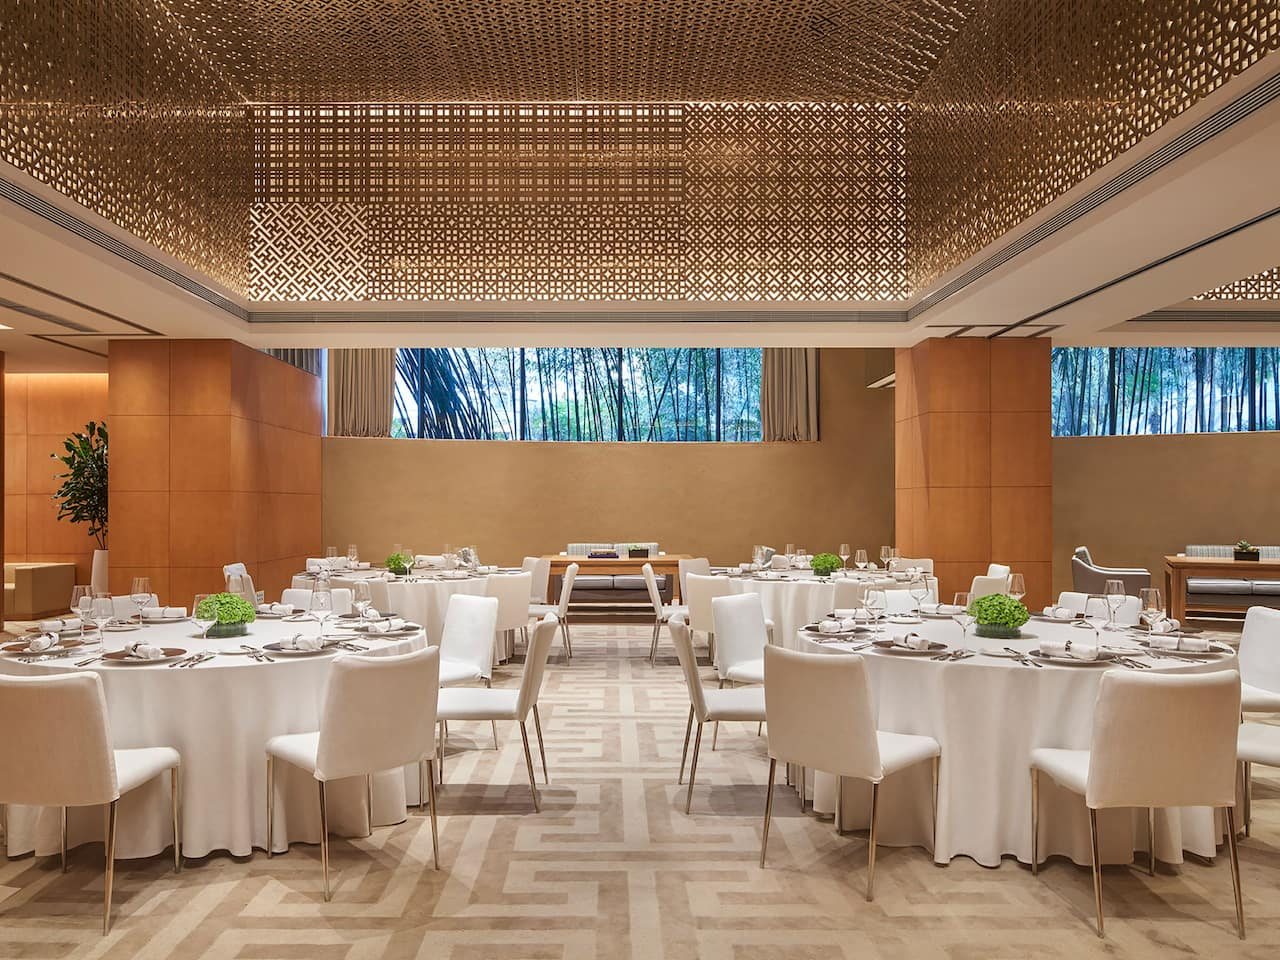 Bamboo Function Room Banquet Setup